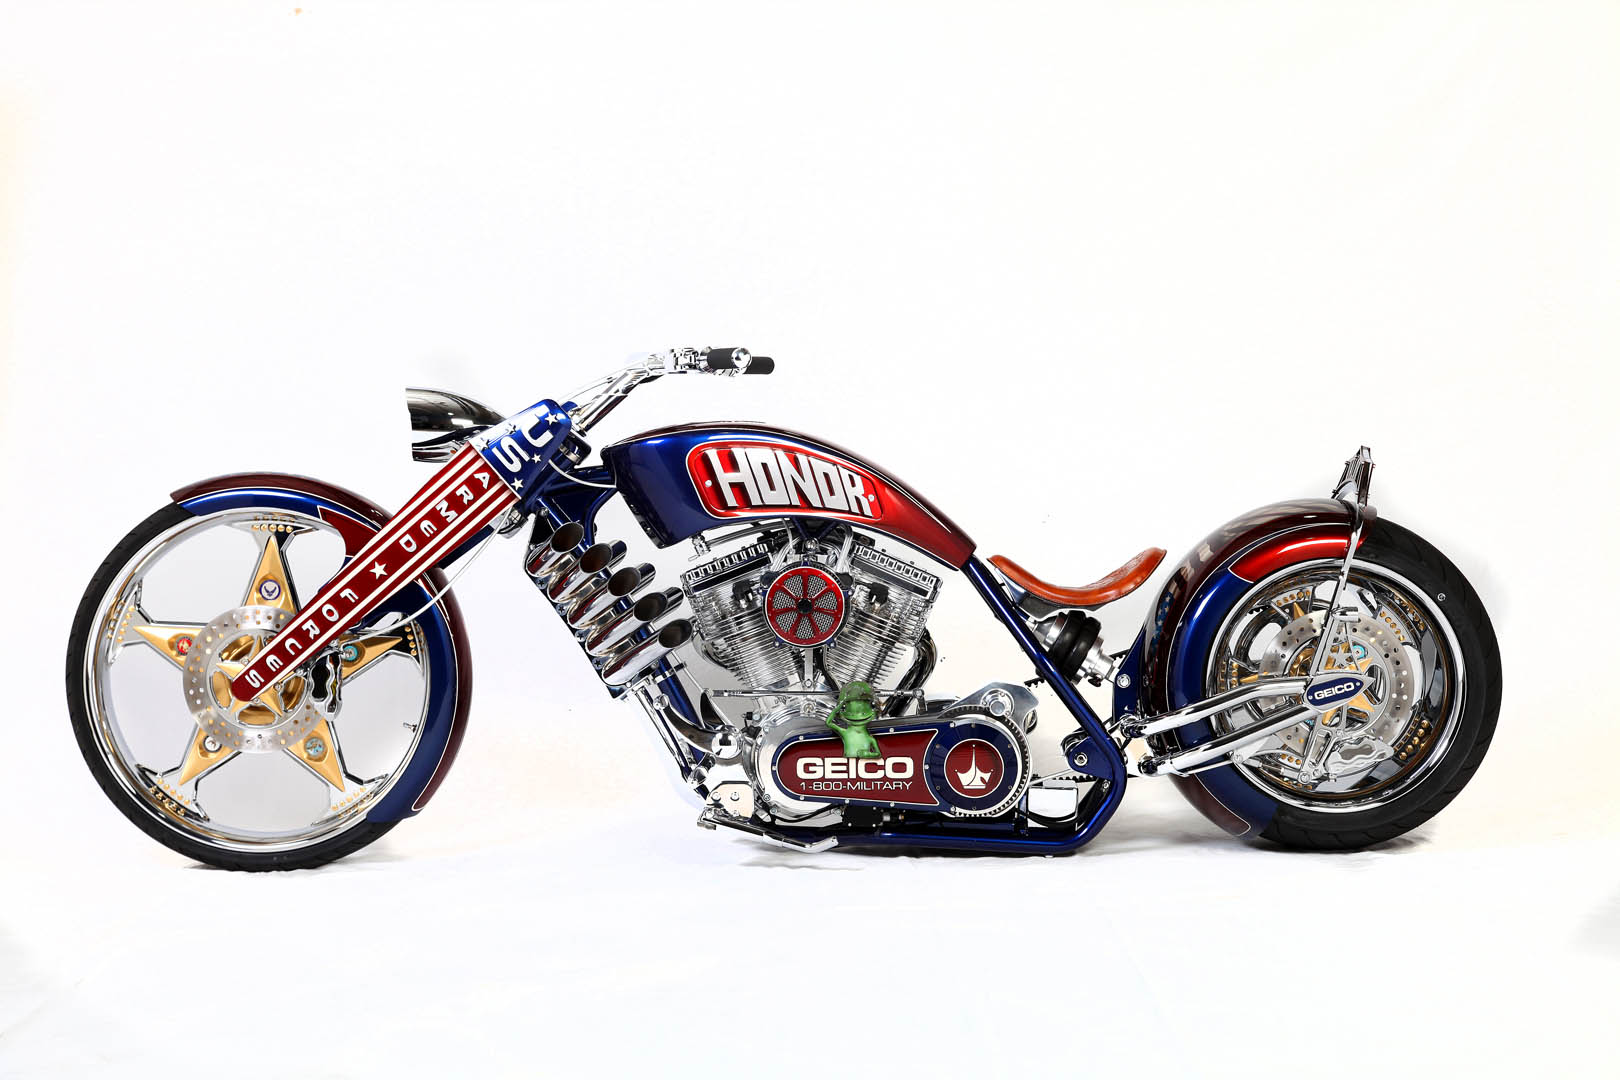 paul-jr-designs-geico-bike-040